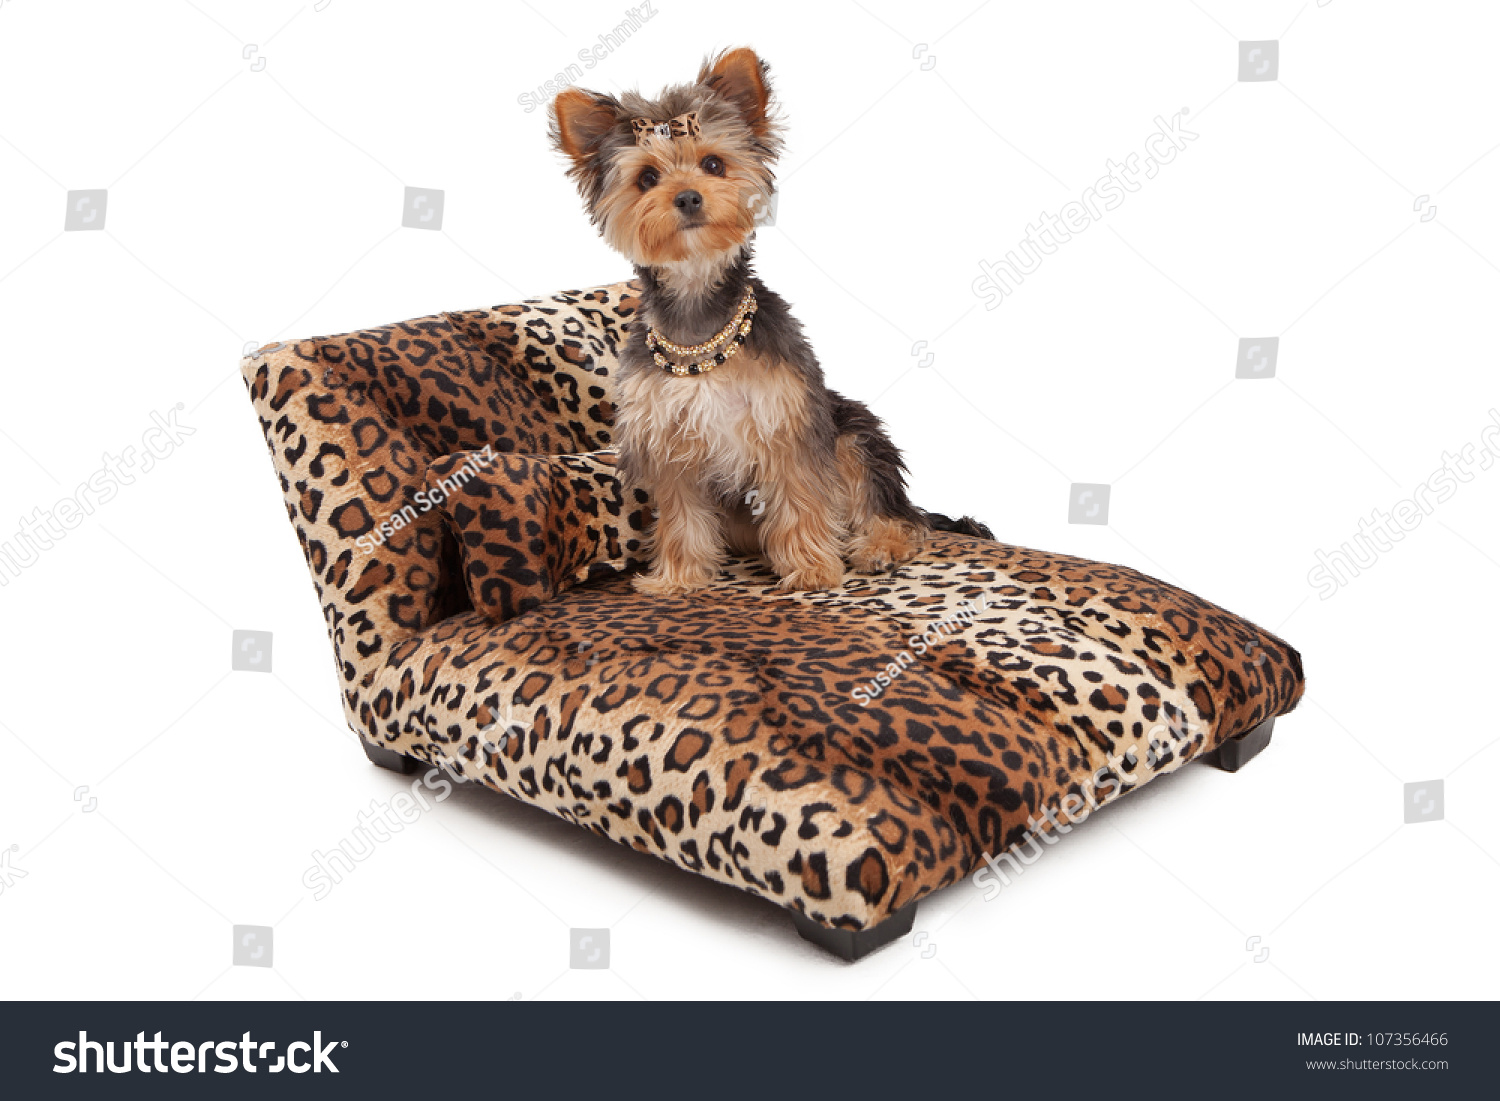 A Cute Yorkshire Terrier Dog Wearing A Necklace And Bow That Is Sitting A Designer Leopard